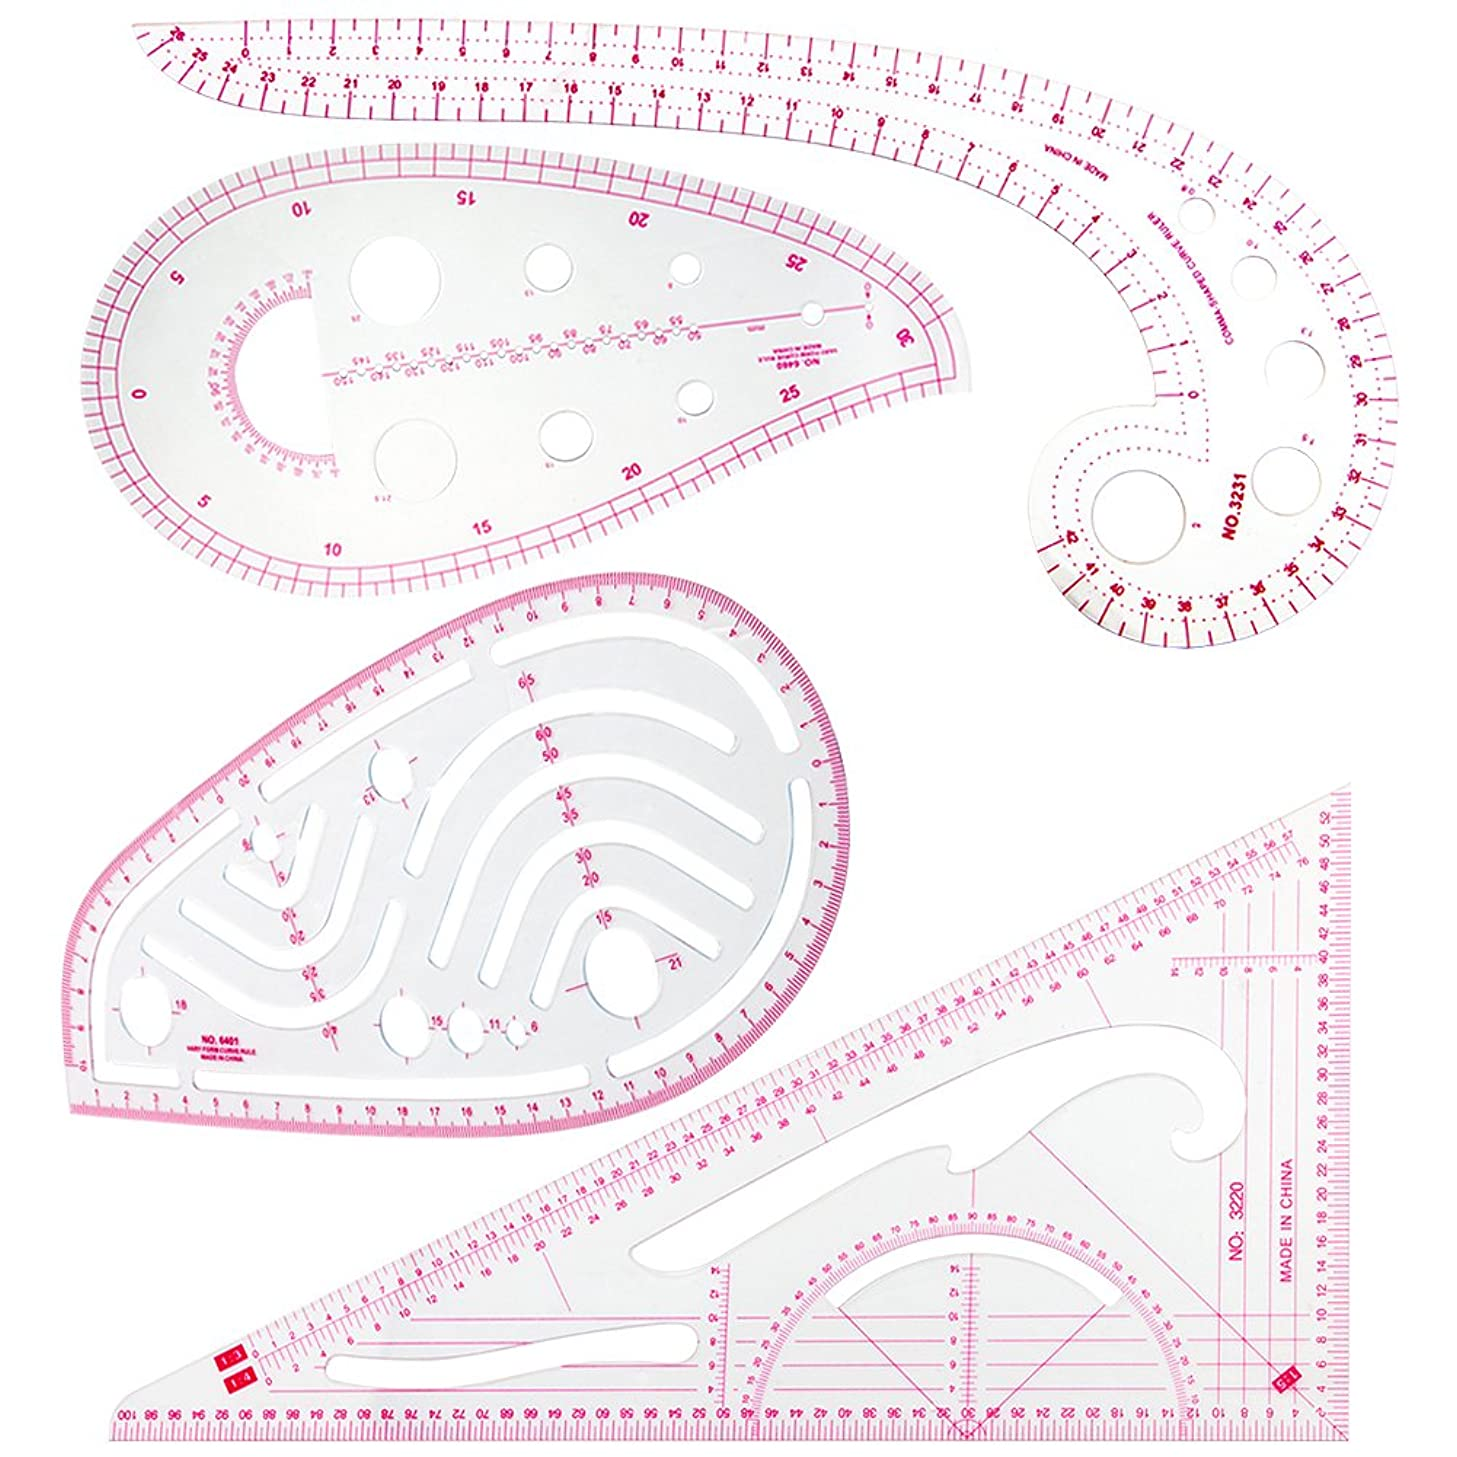 COCODE Sewing Tools 4 Stlye Sew French Curve Metric Shaped Ruler Measure for Sewing Dressmaking Pattern Design DIY Clothing Bendable Drawing Template, Perfect for Designers, Pattern Maker and Tailors